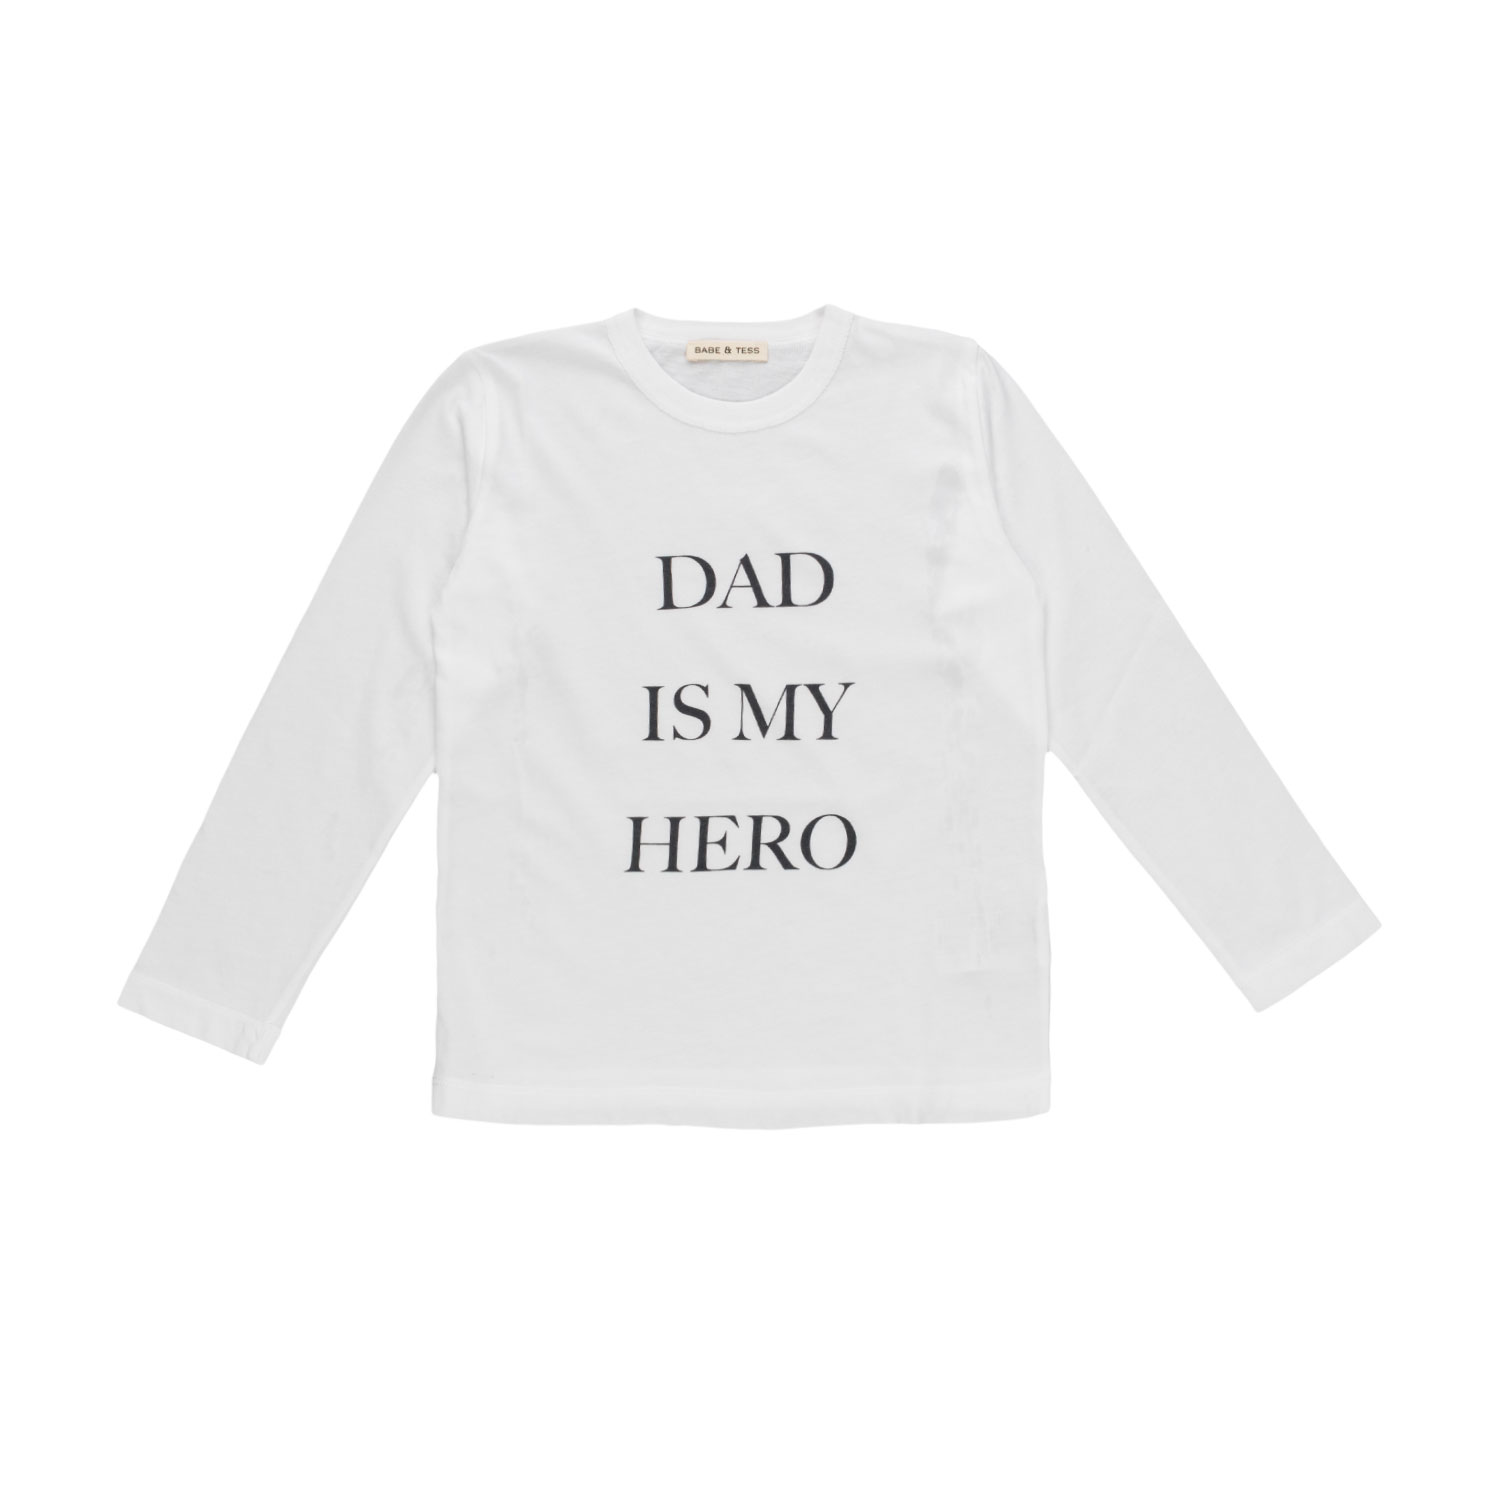 8c4f900c9 Babe & Tess - Girl Dad Is My Hero T-Shirt - annameglio.com shop online